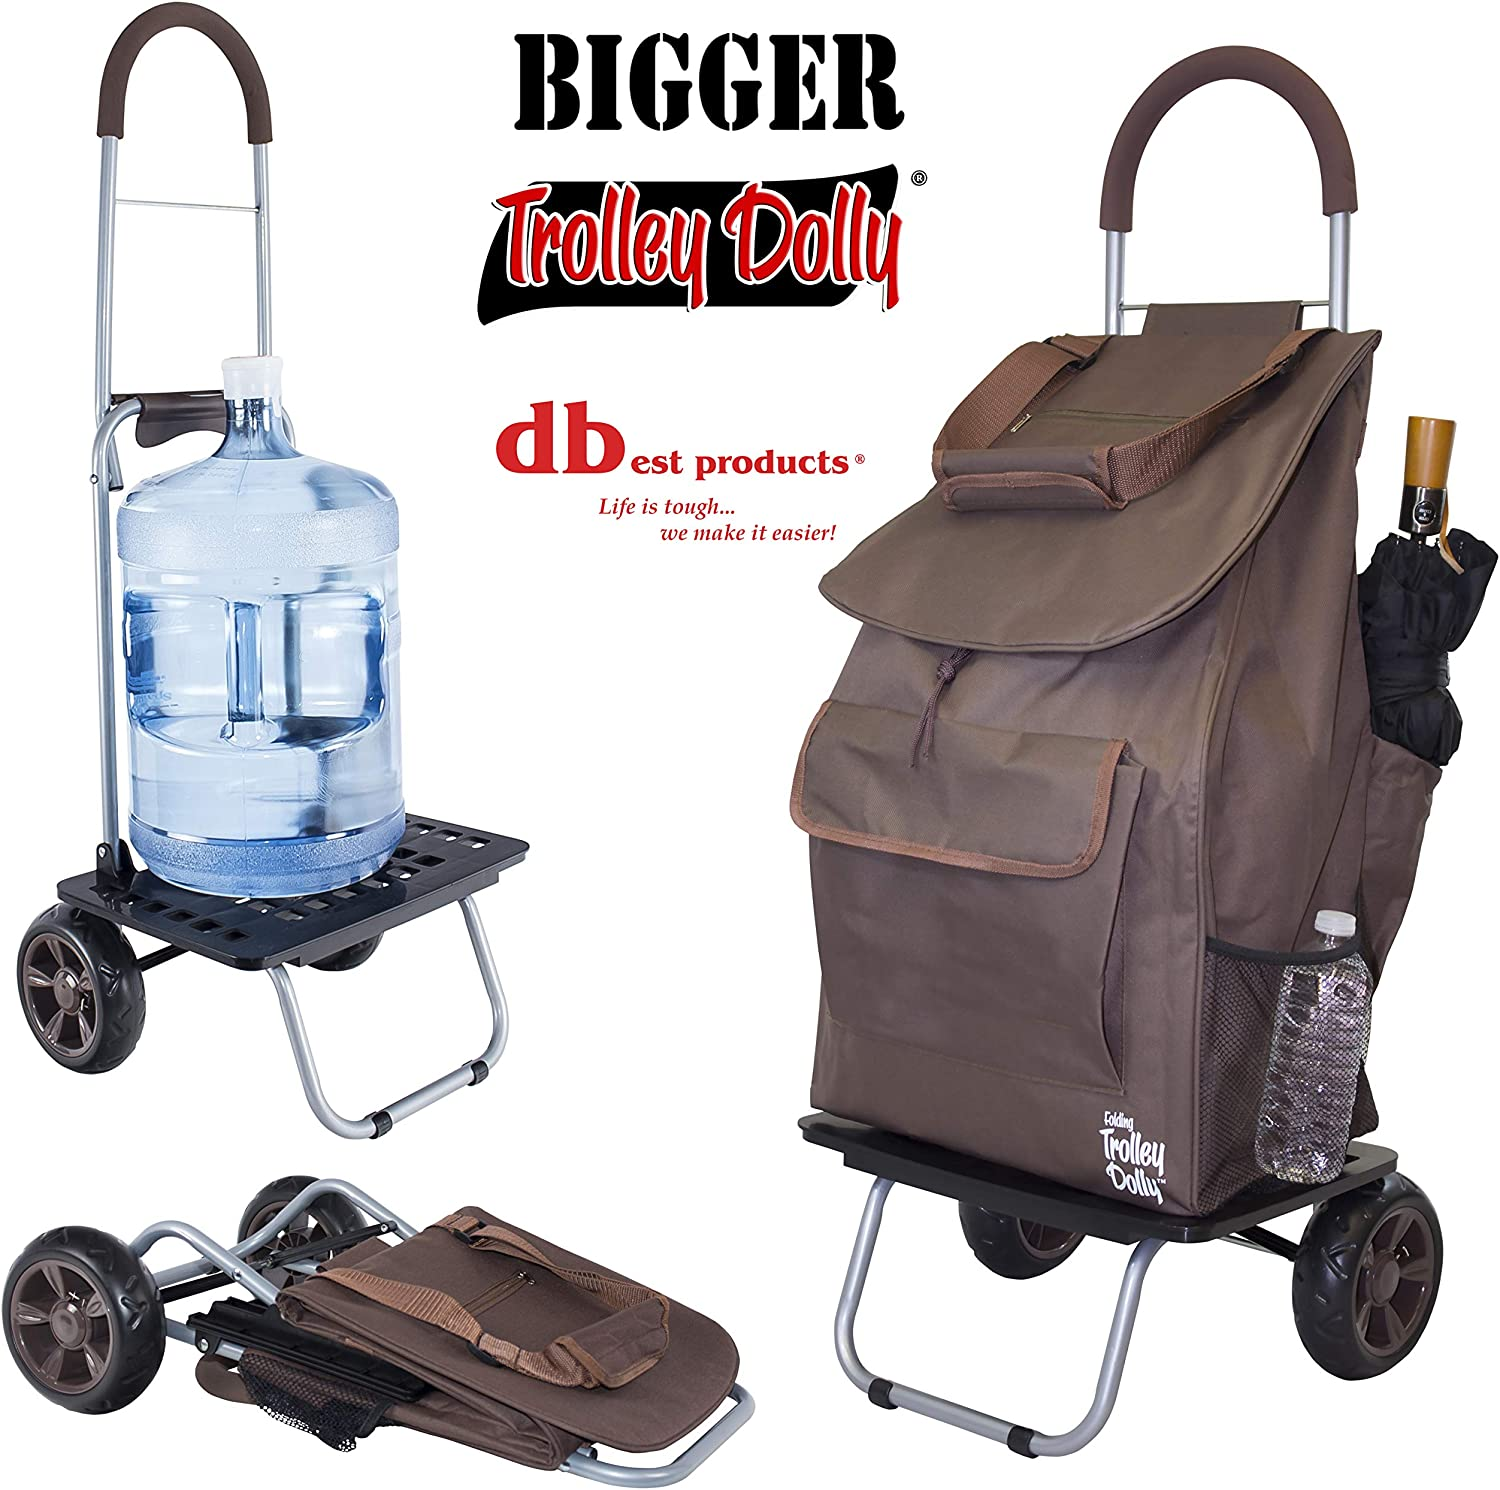 dbest products Bigger Trolley Dolly, BrownShopping Grocery Foldable Cart